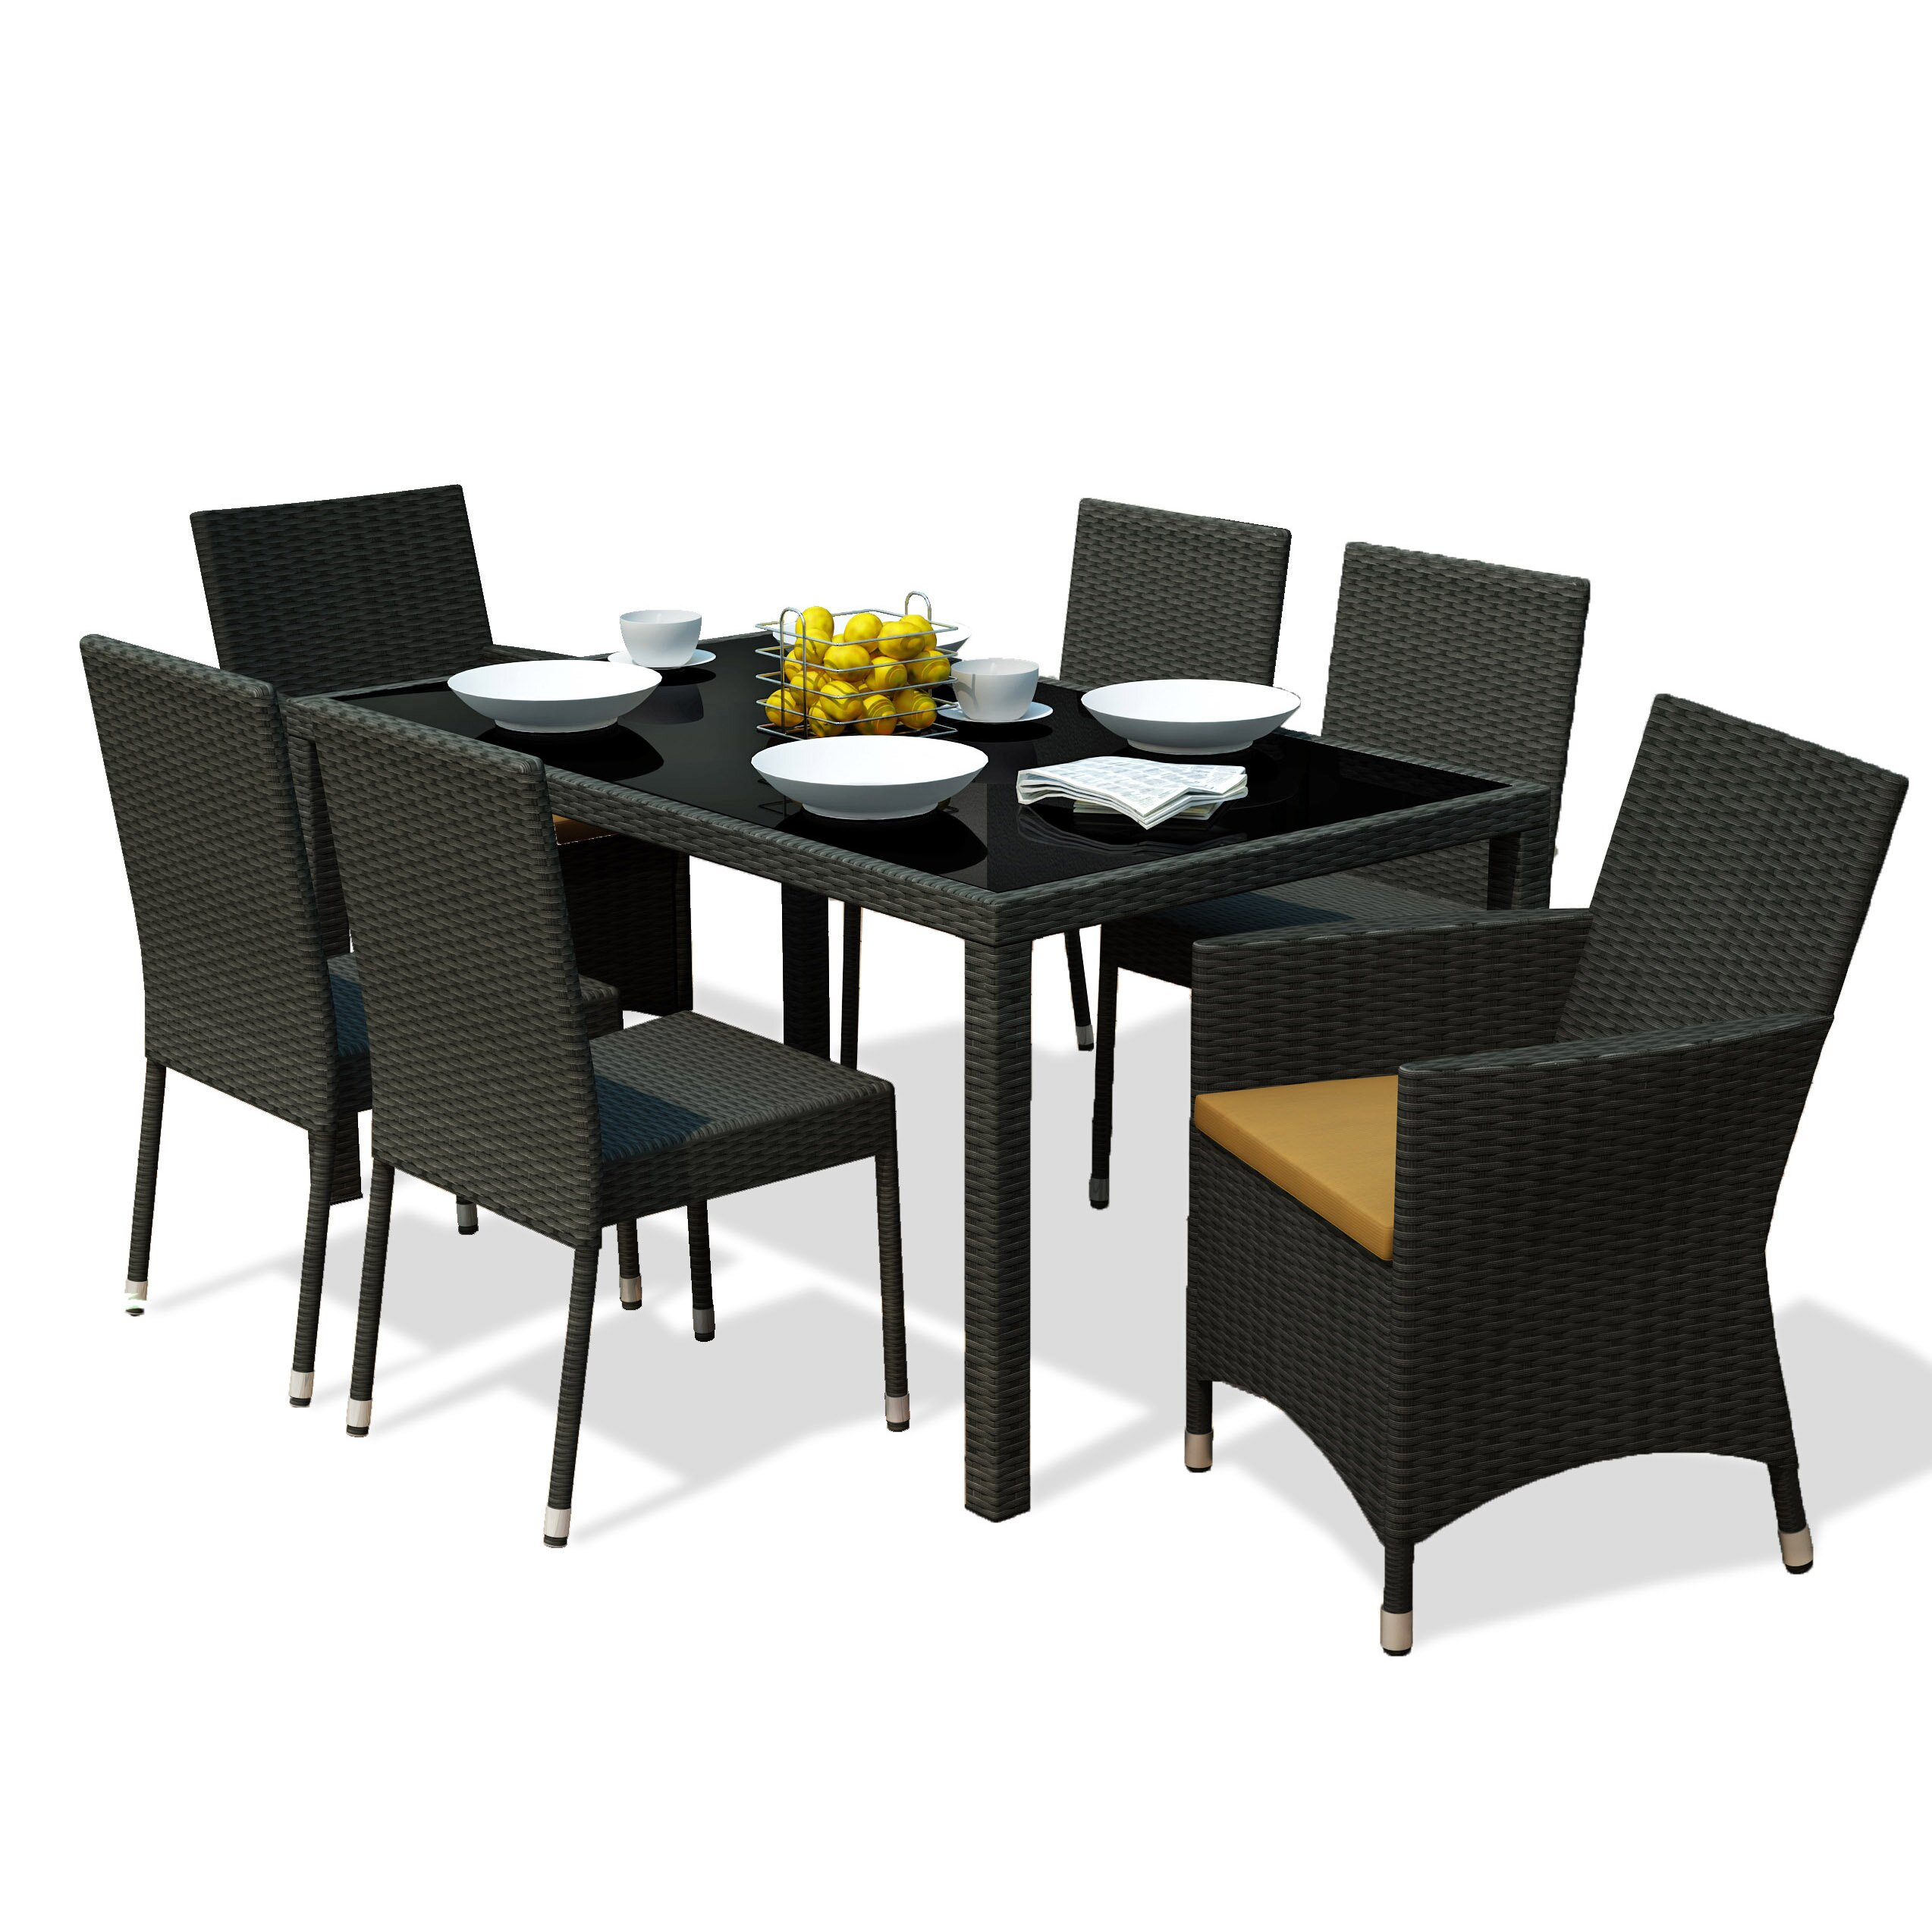 Dcor design park terrace 7 piece dining set reviews for Decor 7 piece lunch set